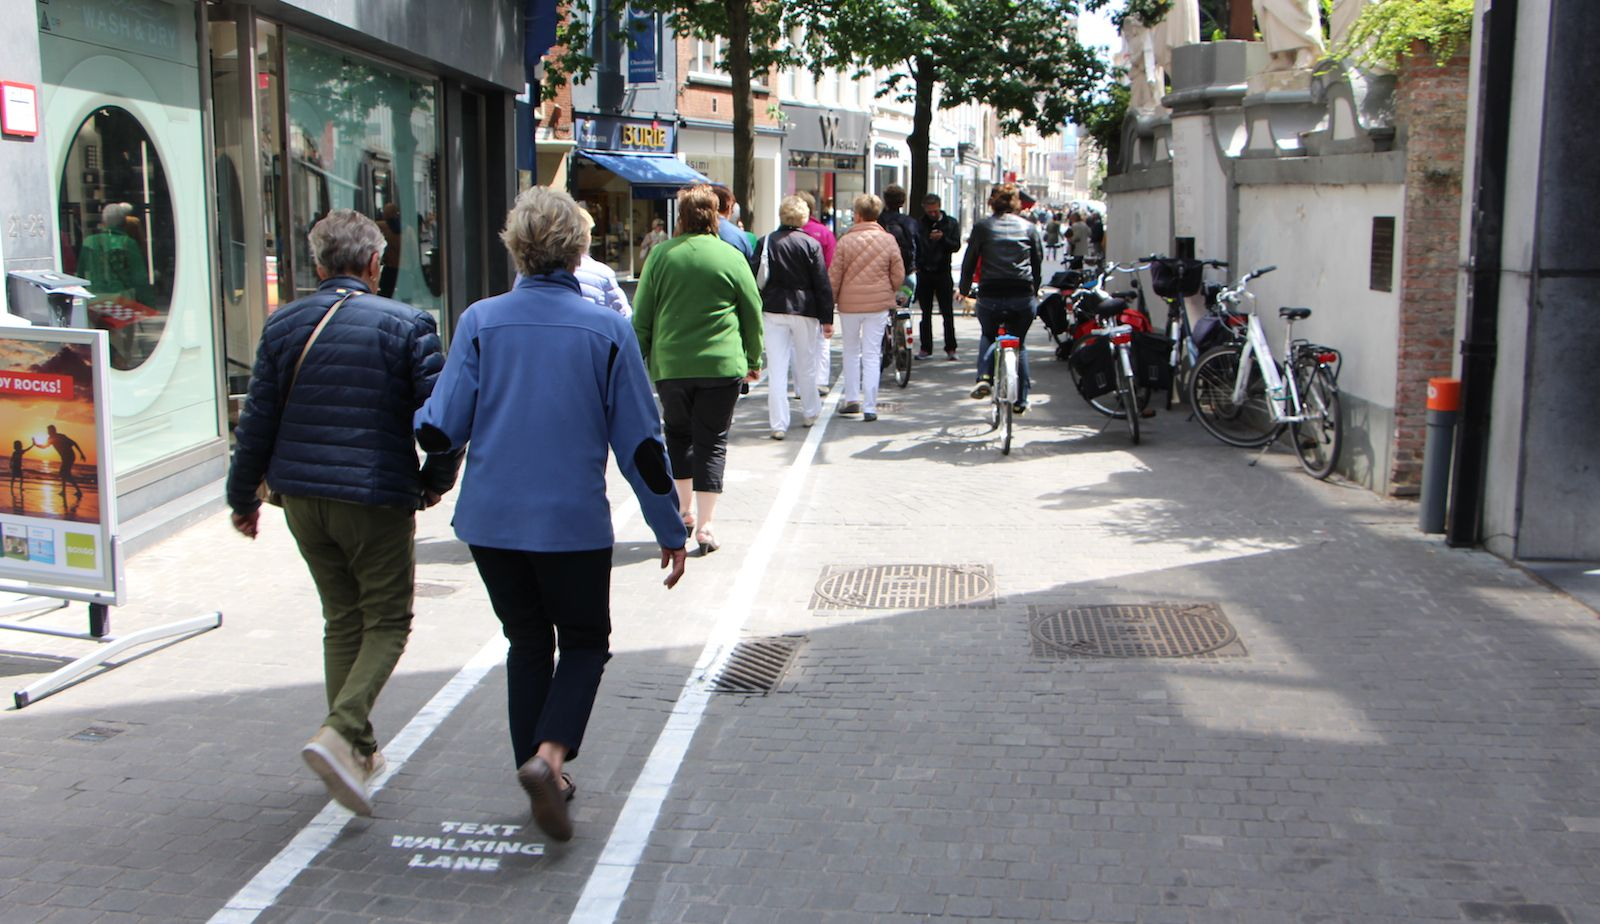 Mlab text-walking lanes in Antwerp